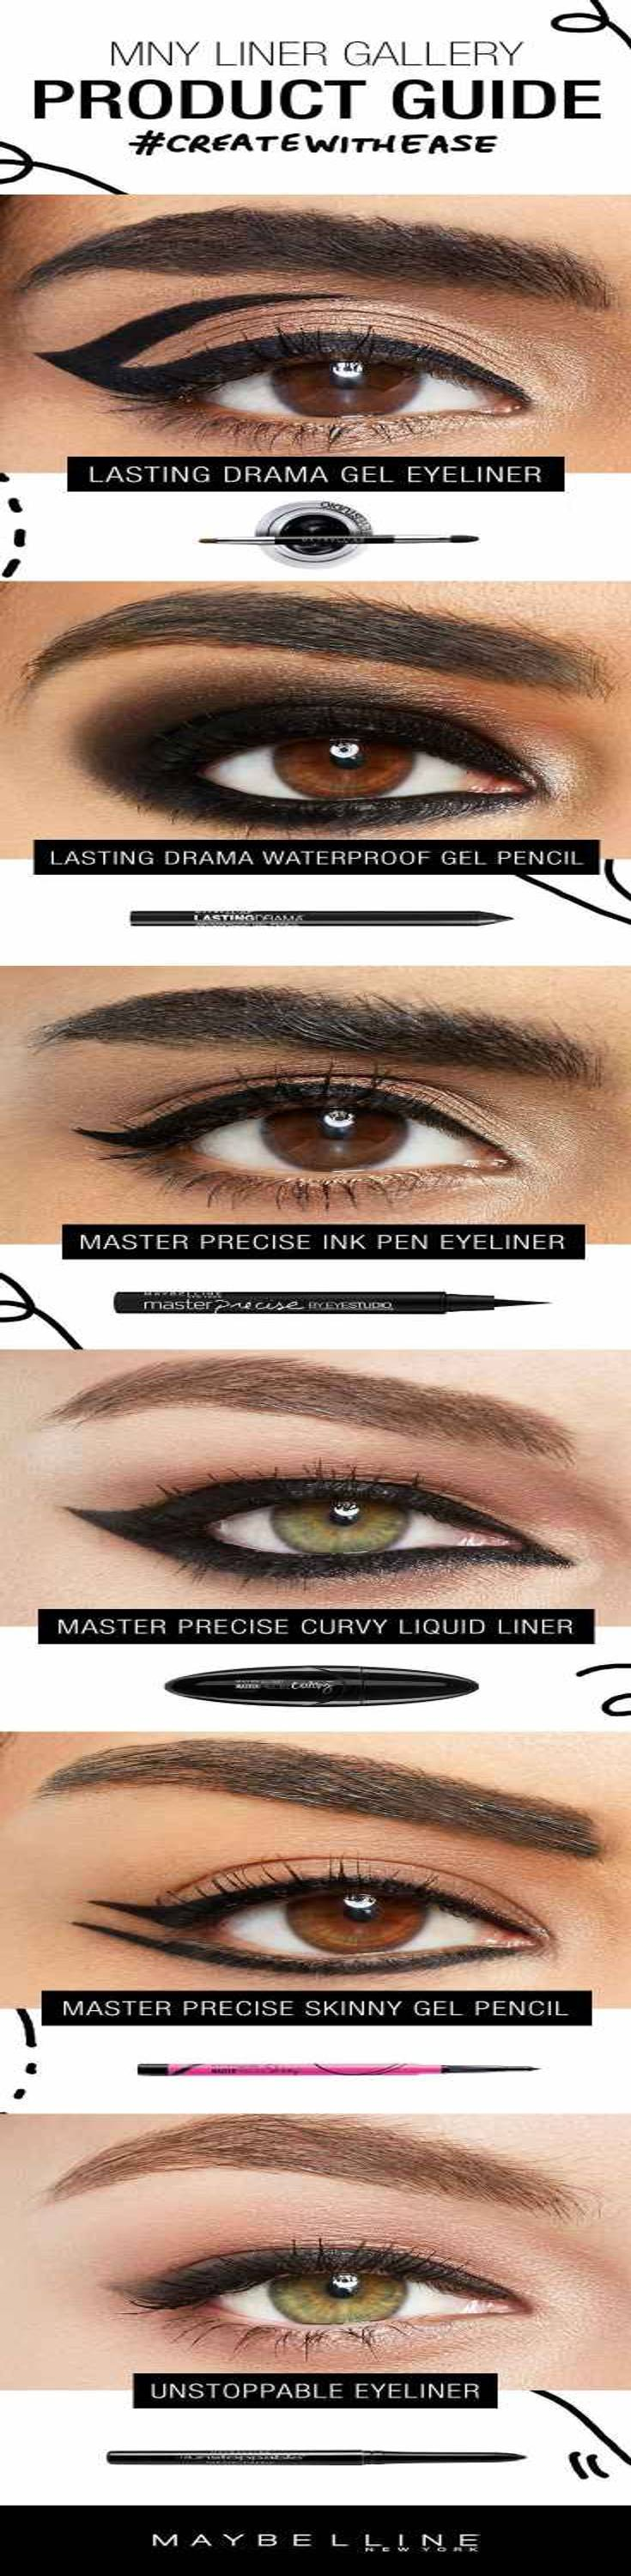 maybelline-eyeliner-gallery-product-guide-by-look-full-width-image